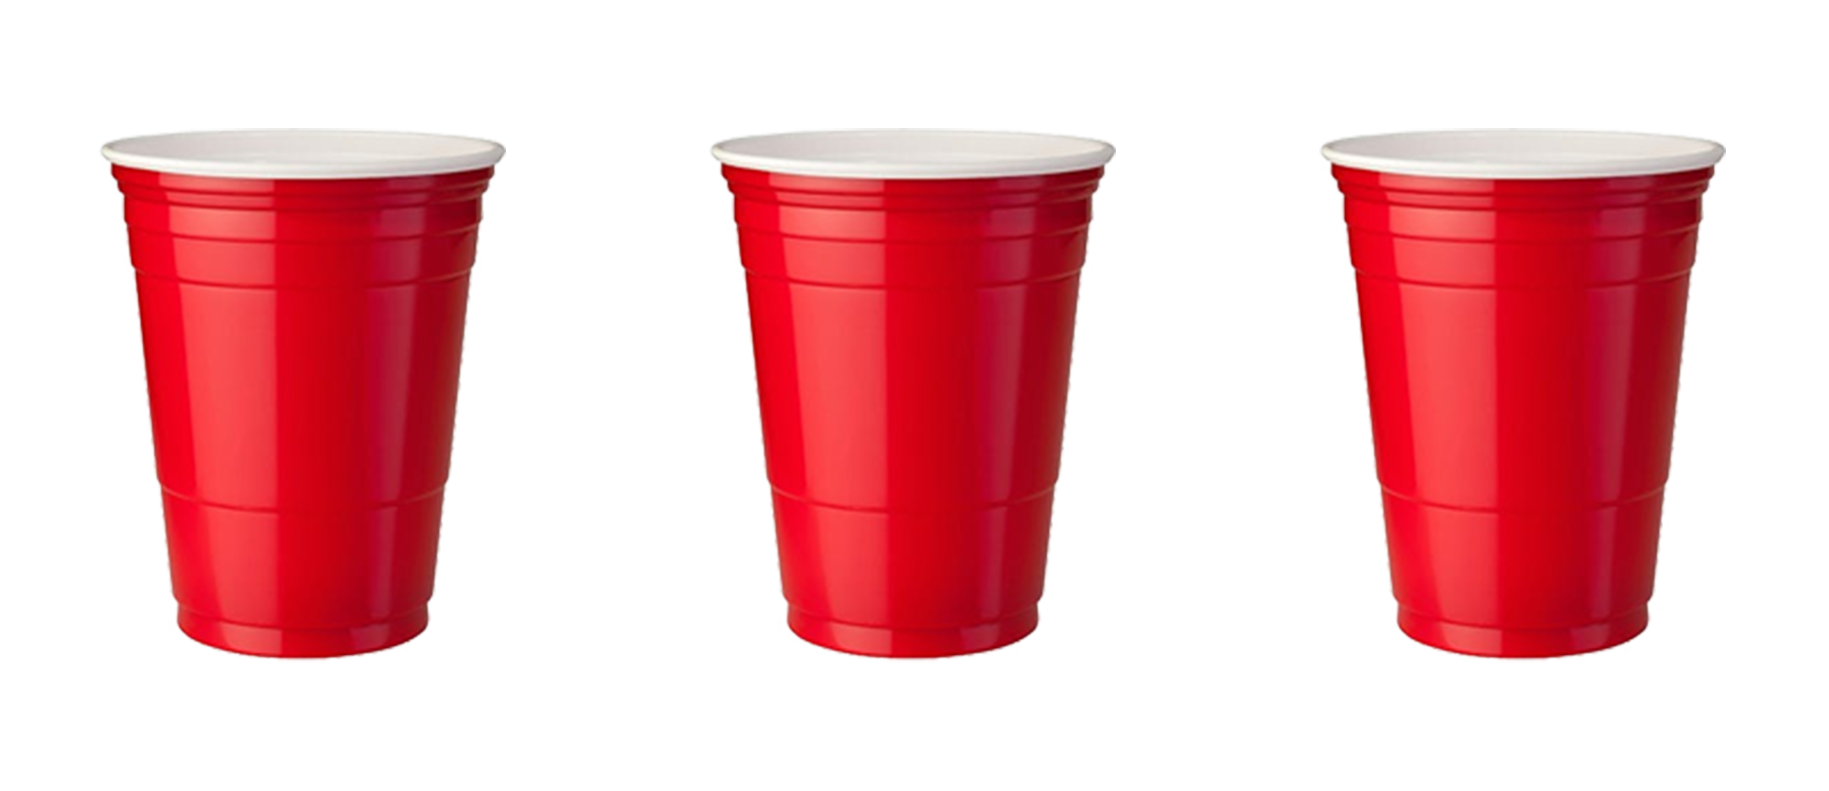 Uncle's Critique - 3 out of 5 party cups